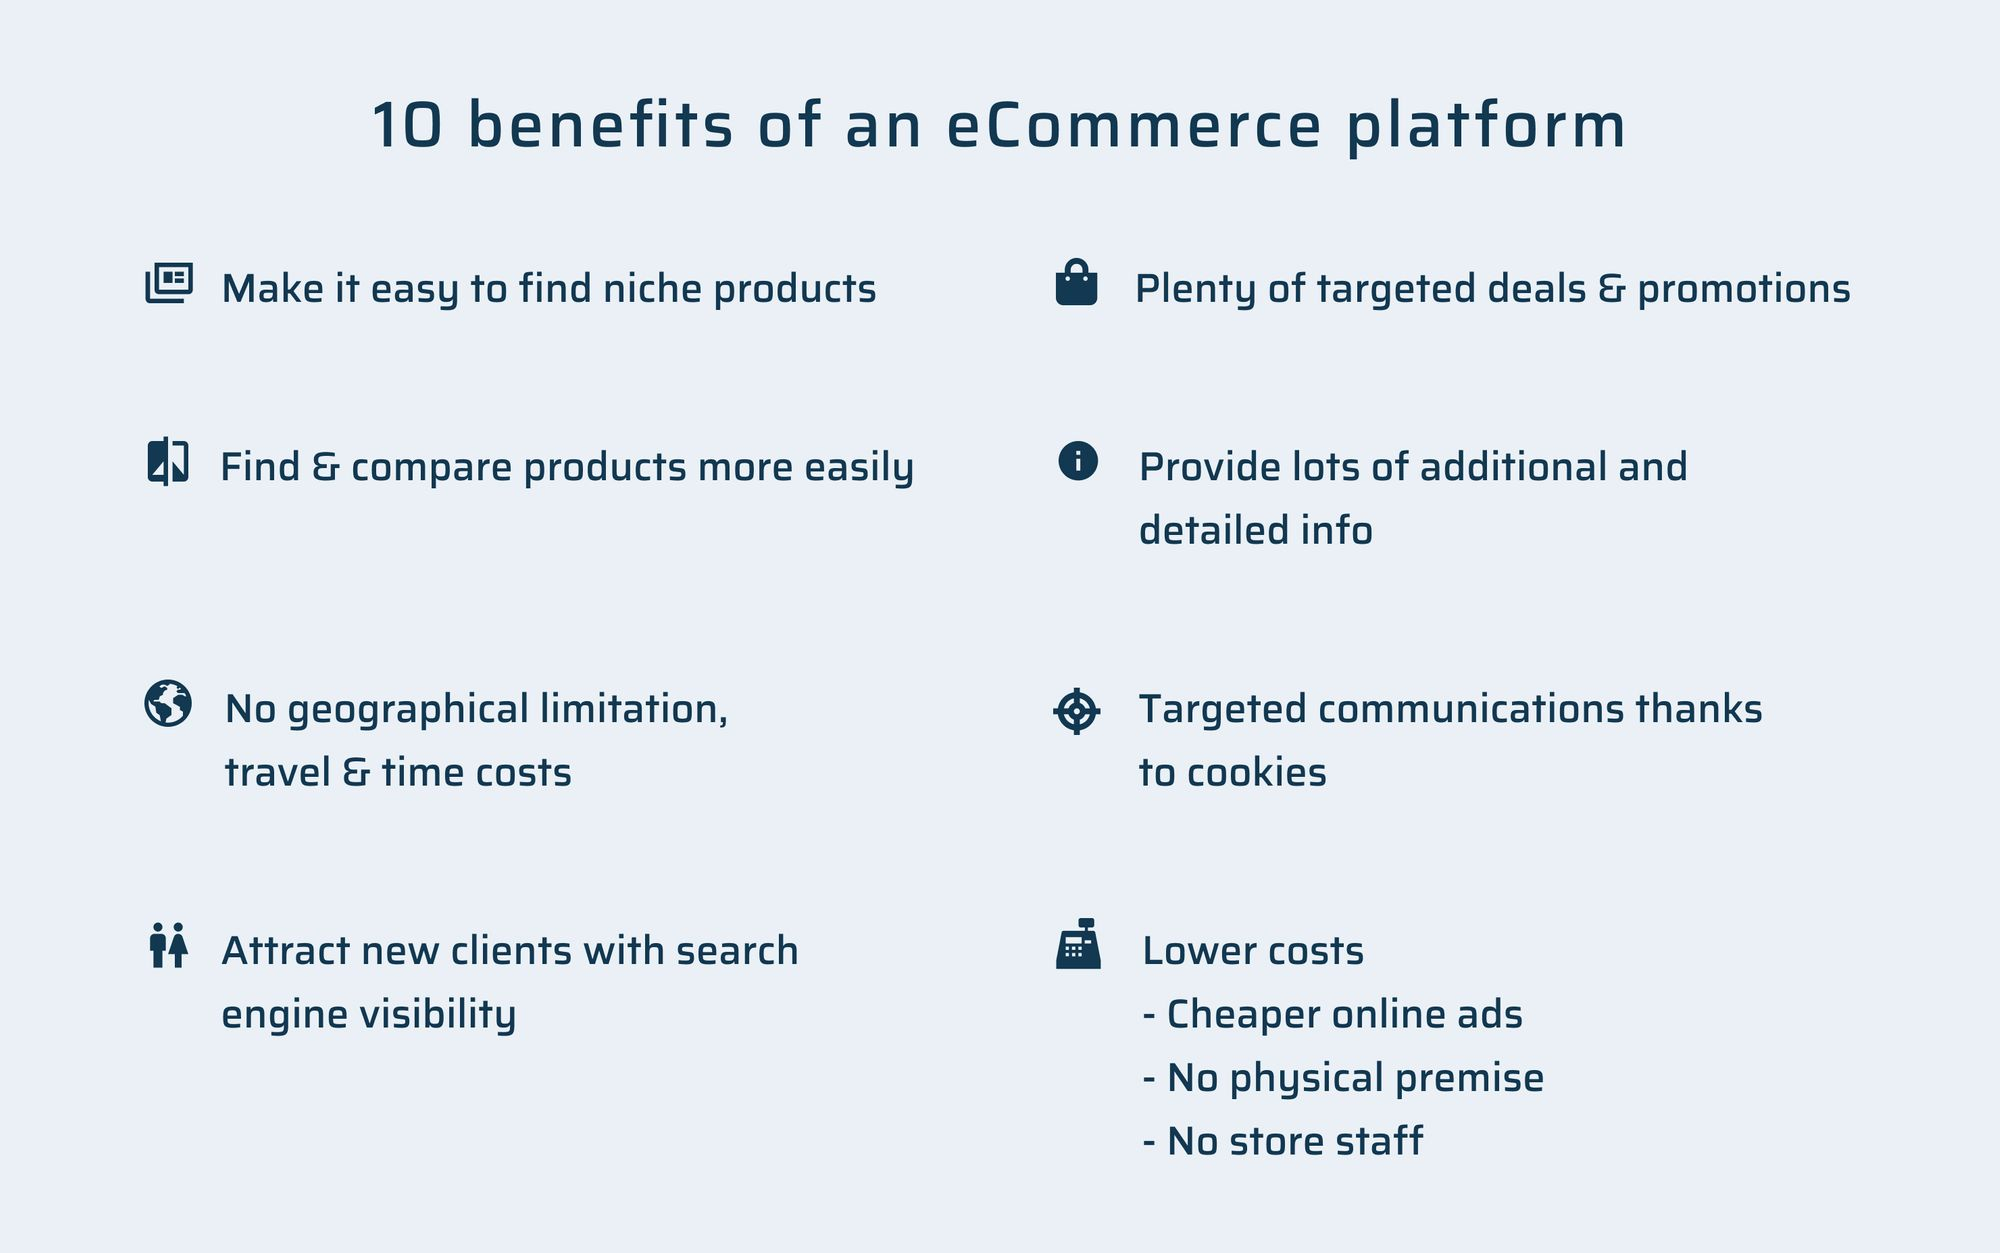 Benefits of eCommerce platform